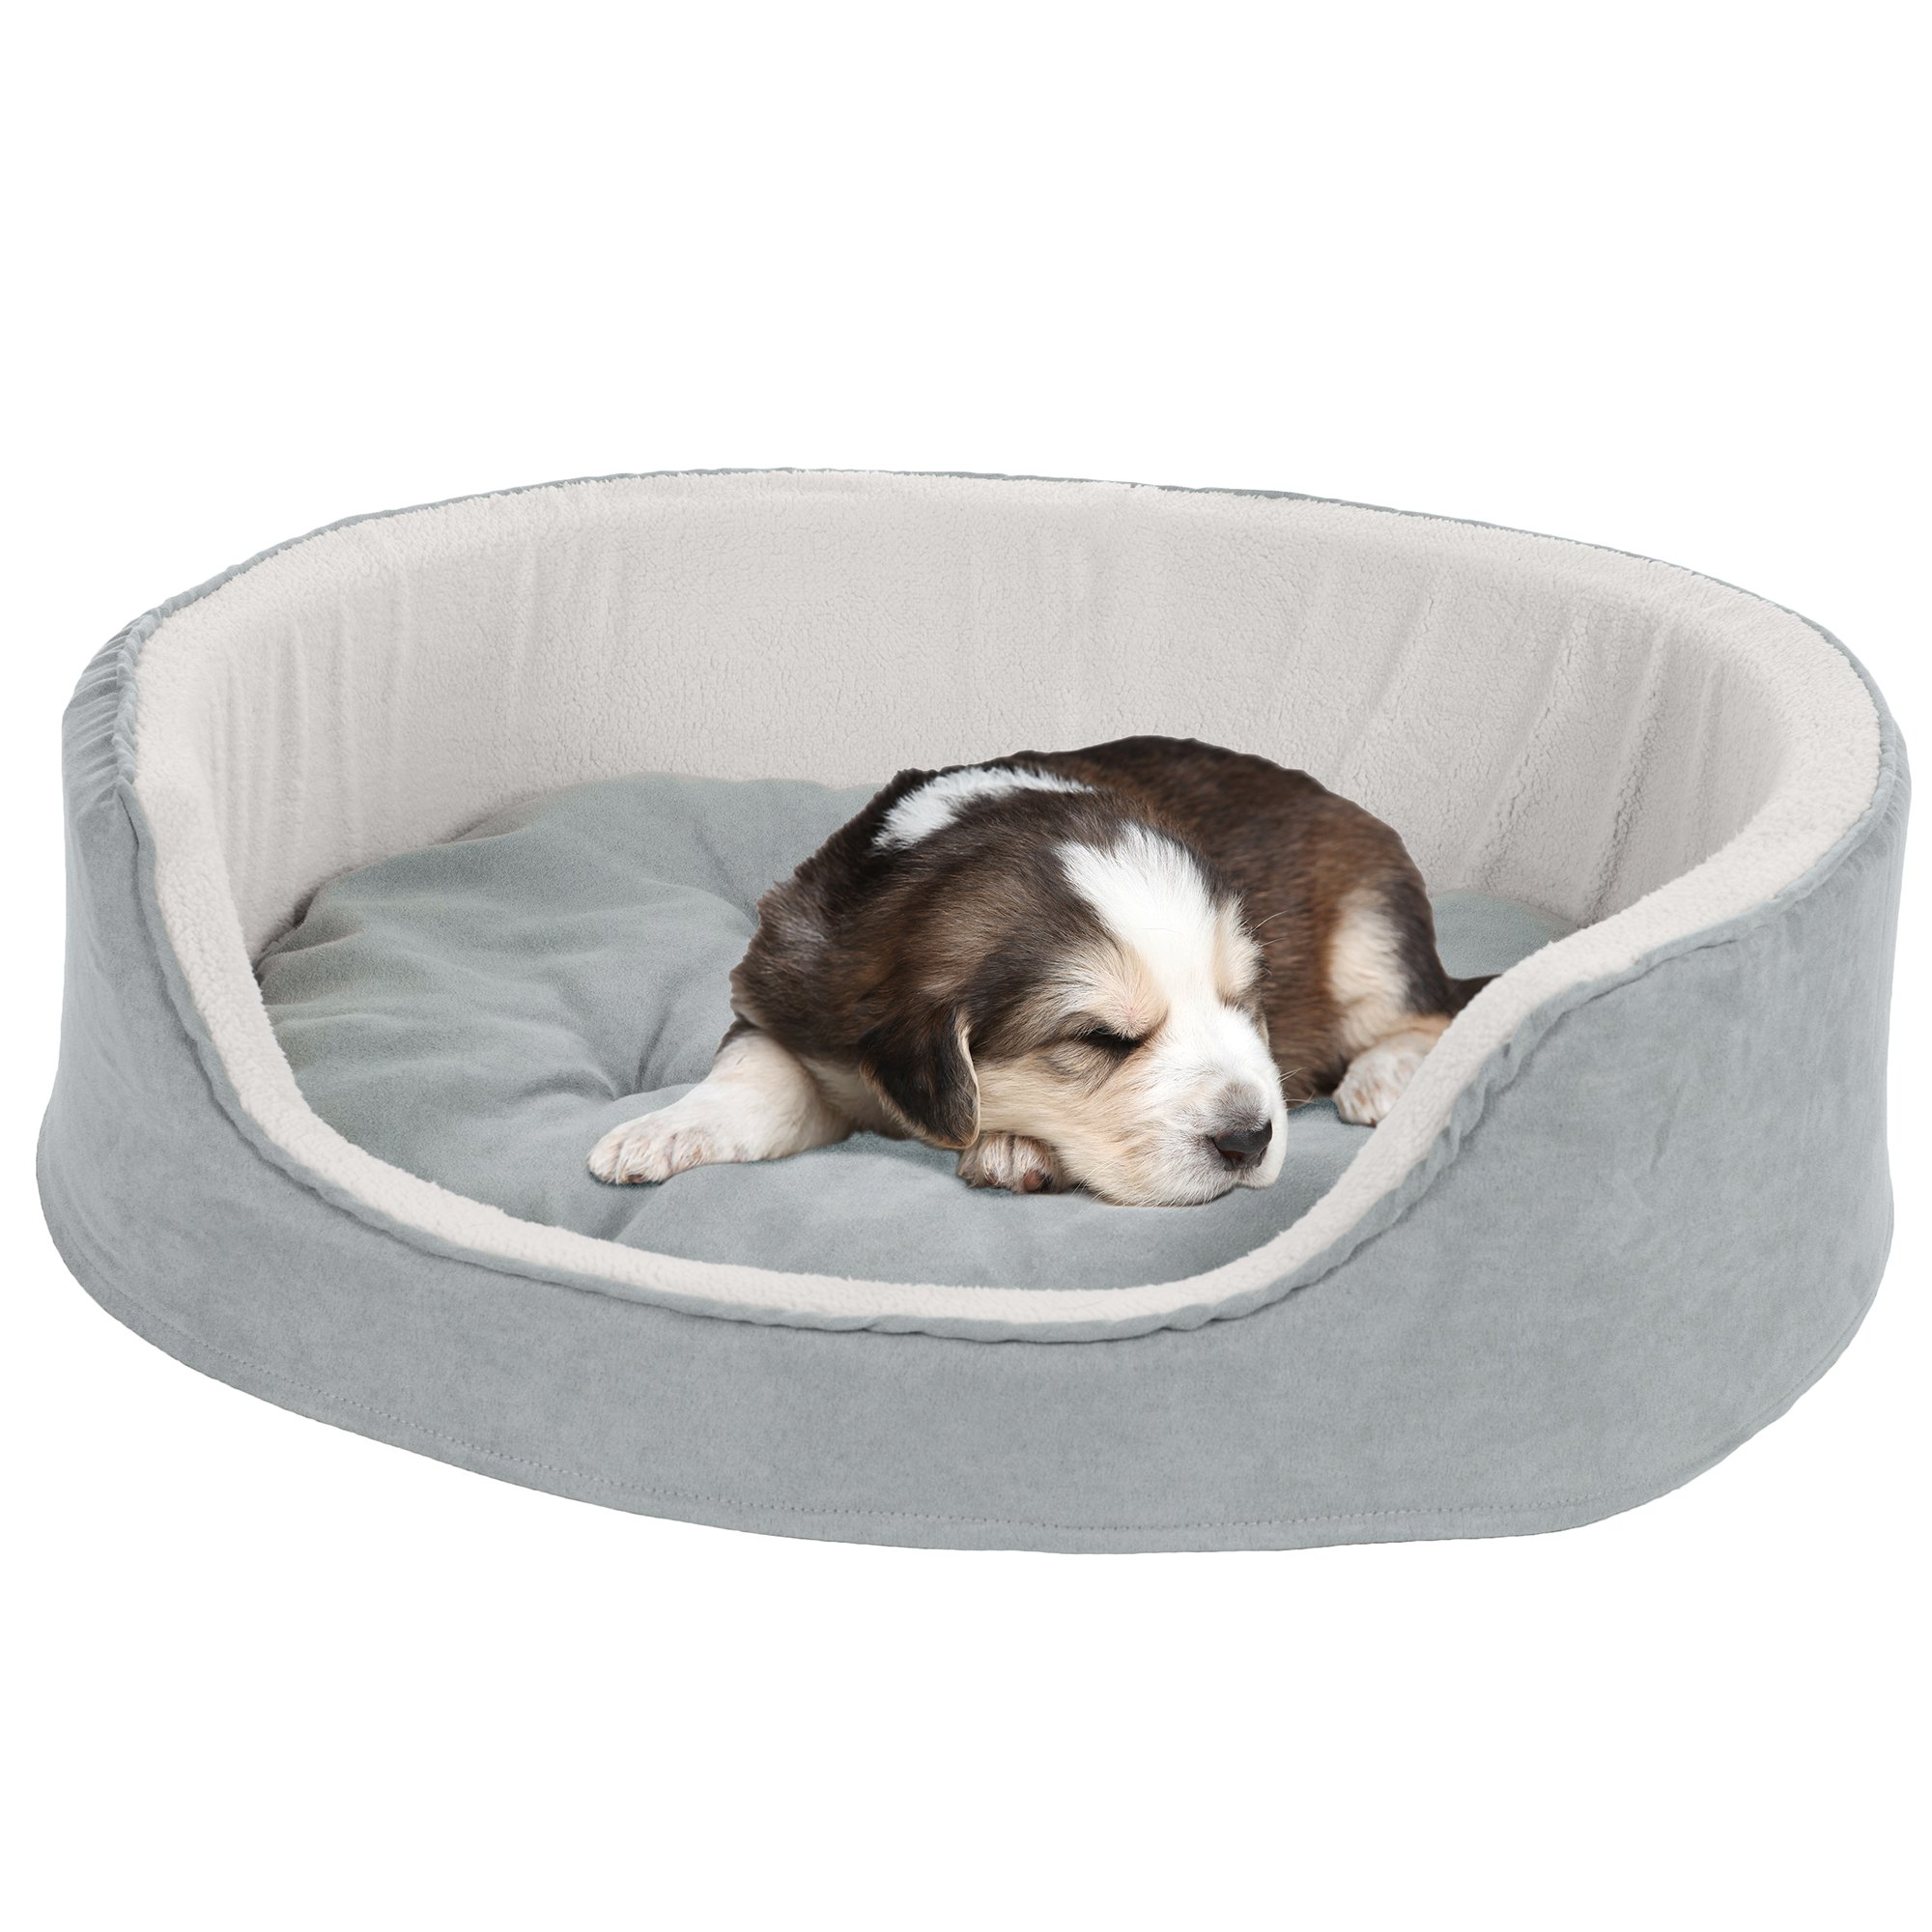 PETMAKER Small Cuddle Round Microsuede Pet Bed - Gray